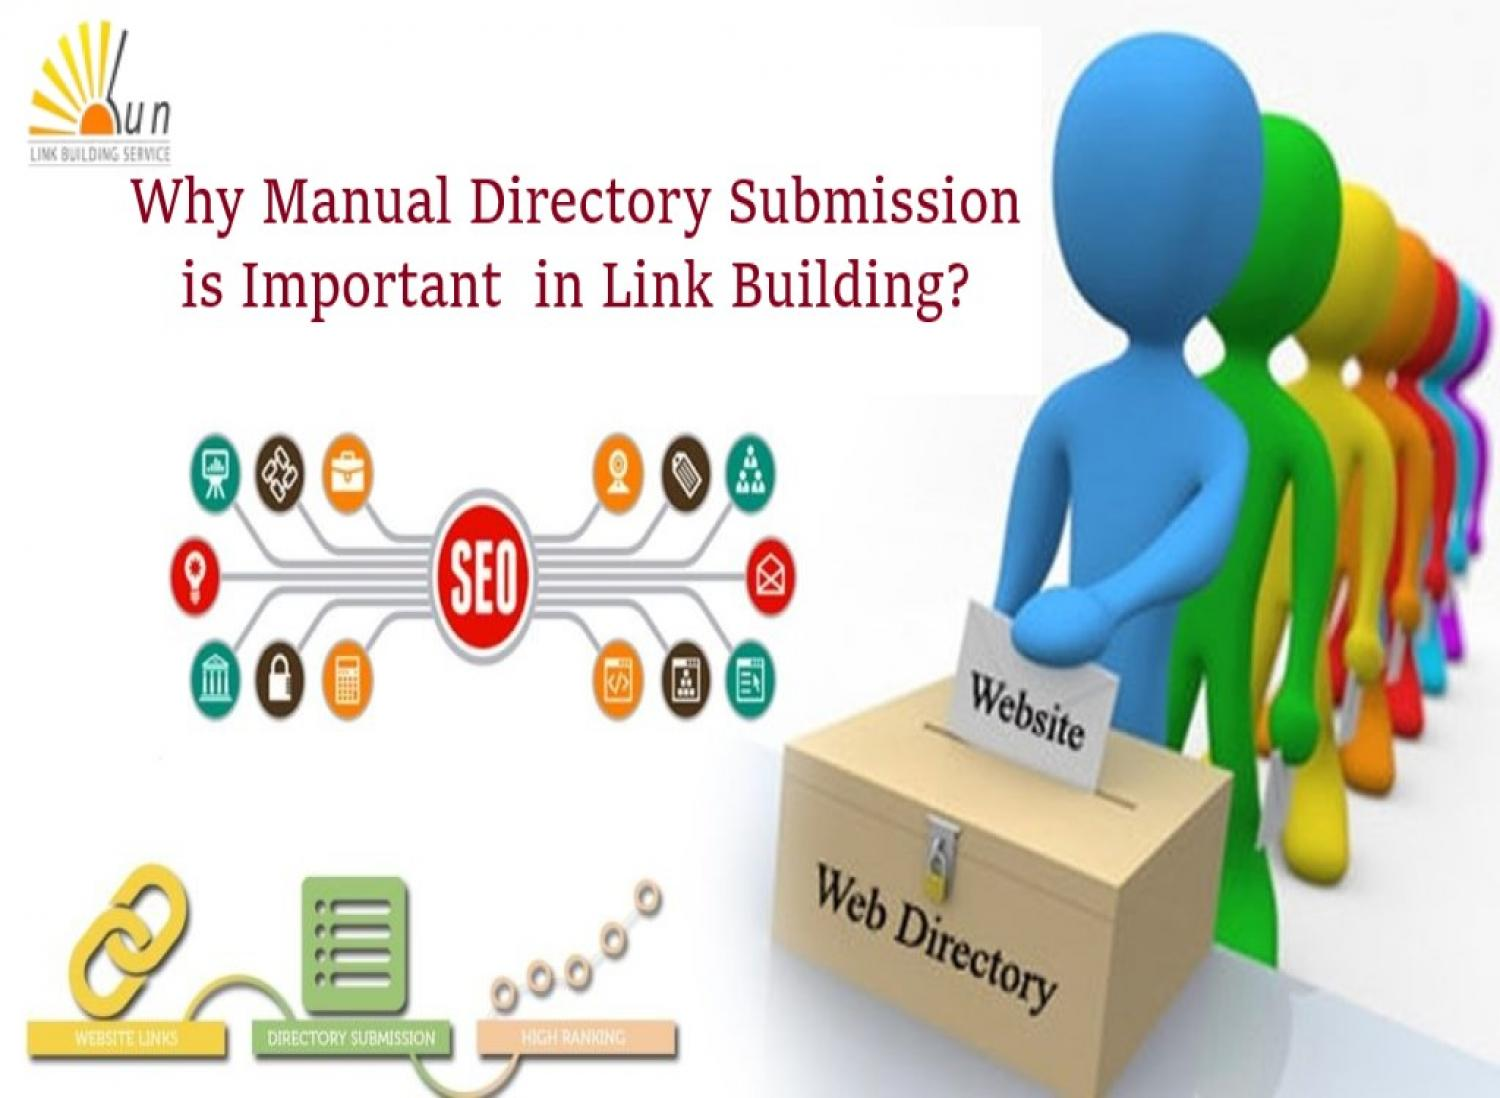 Why Manual Directory Submission Service is Important?